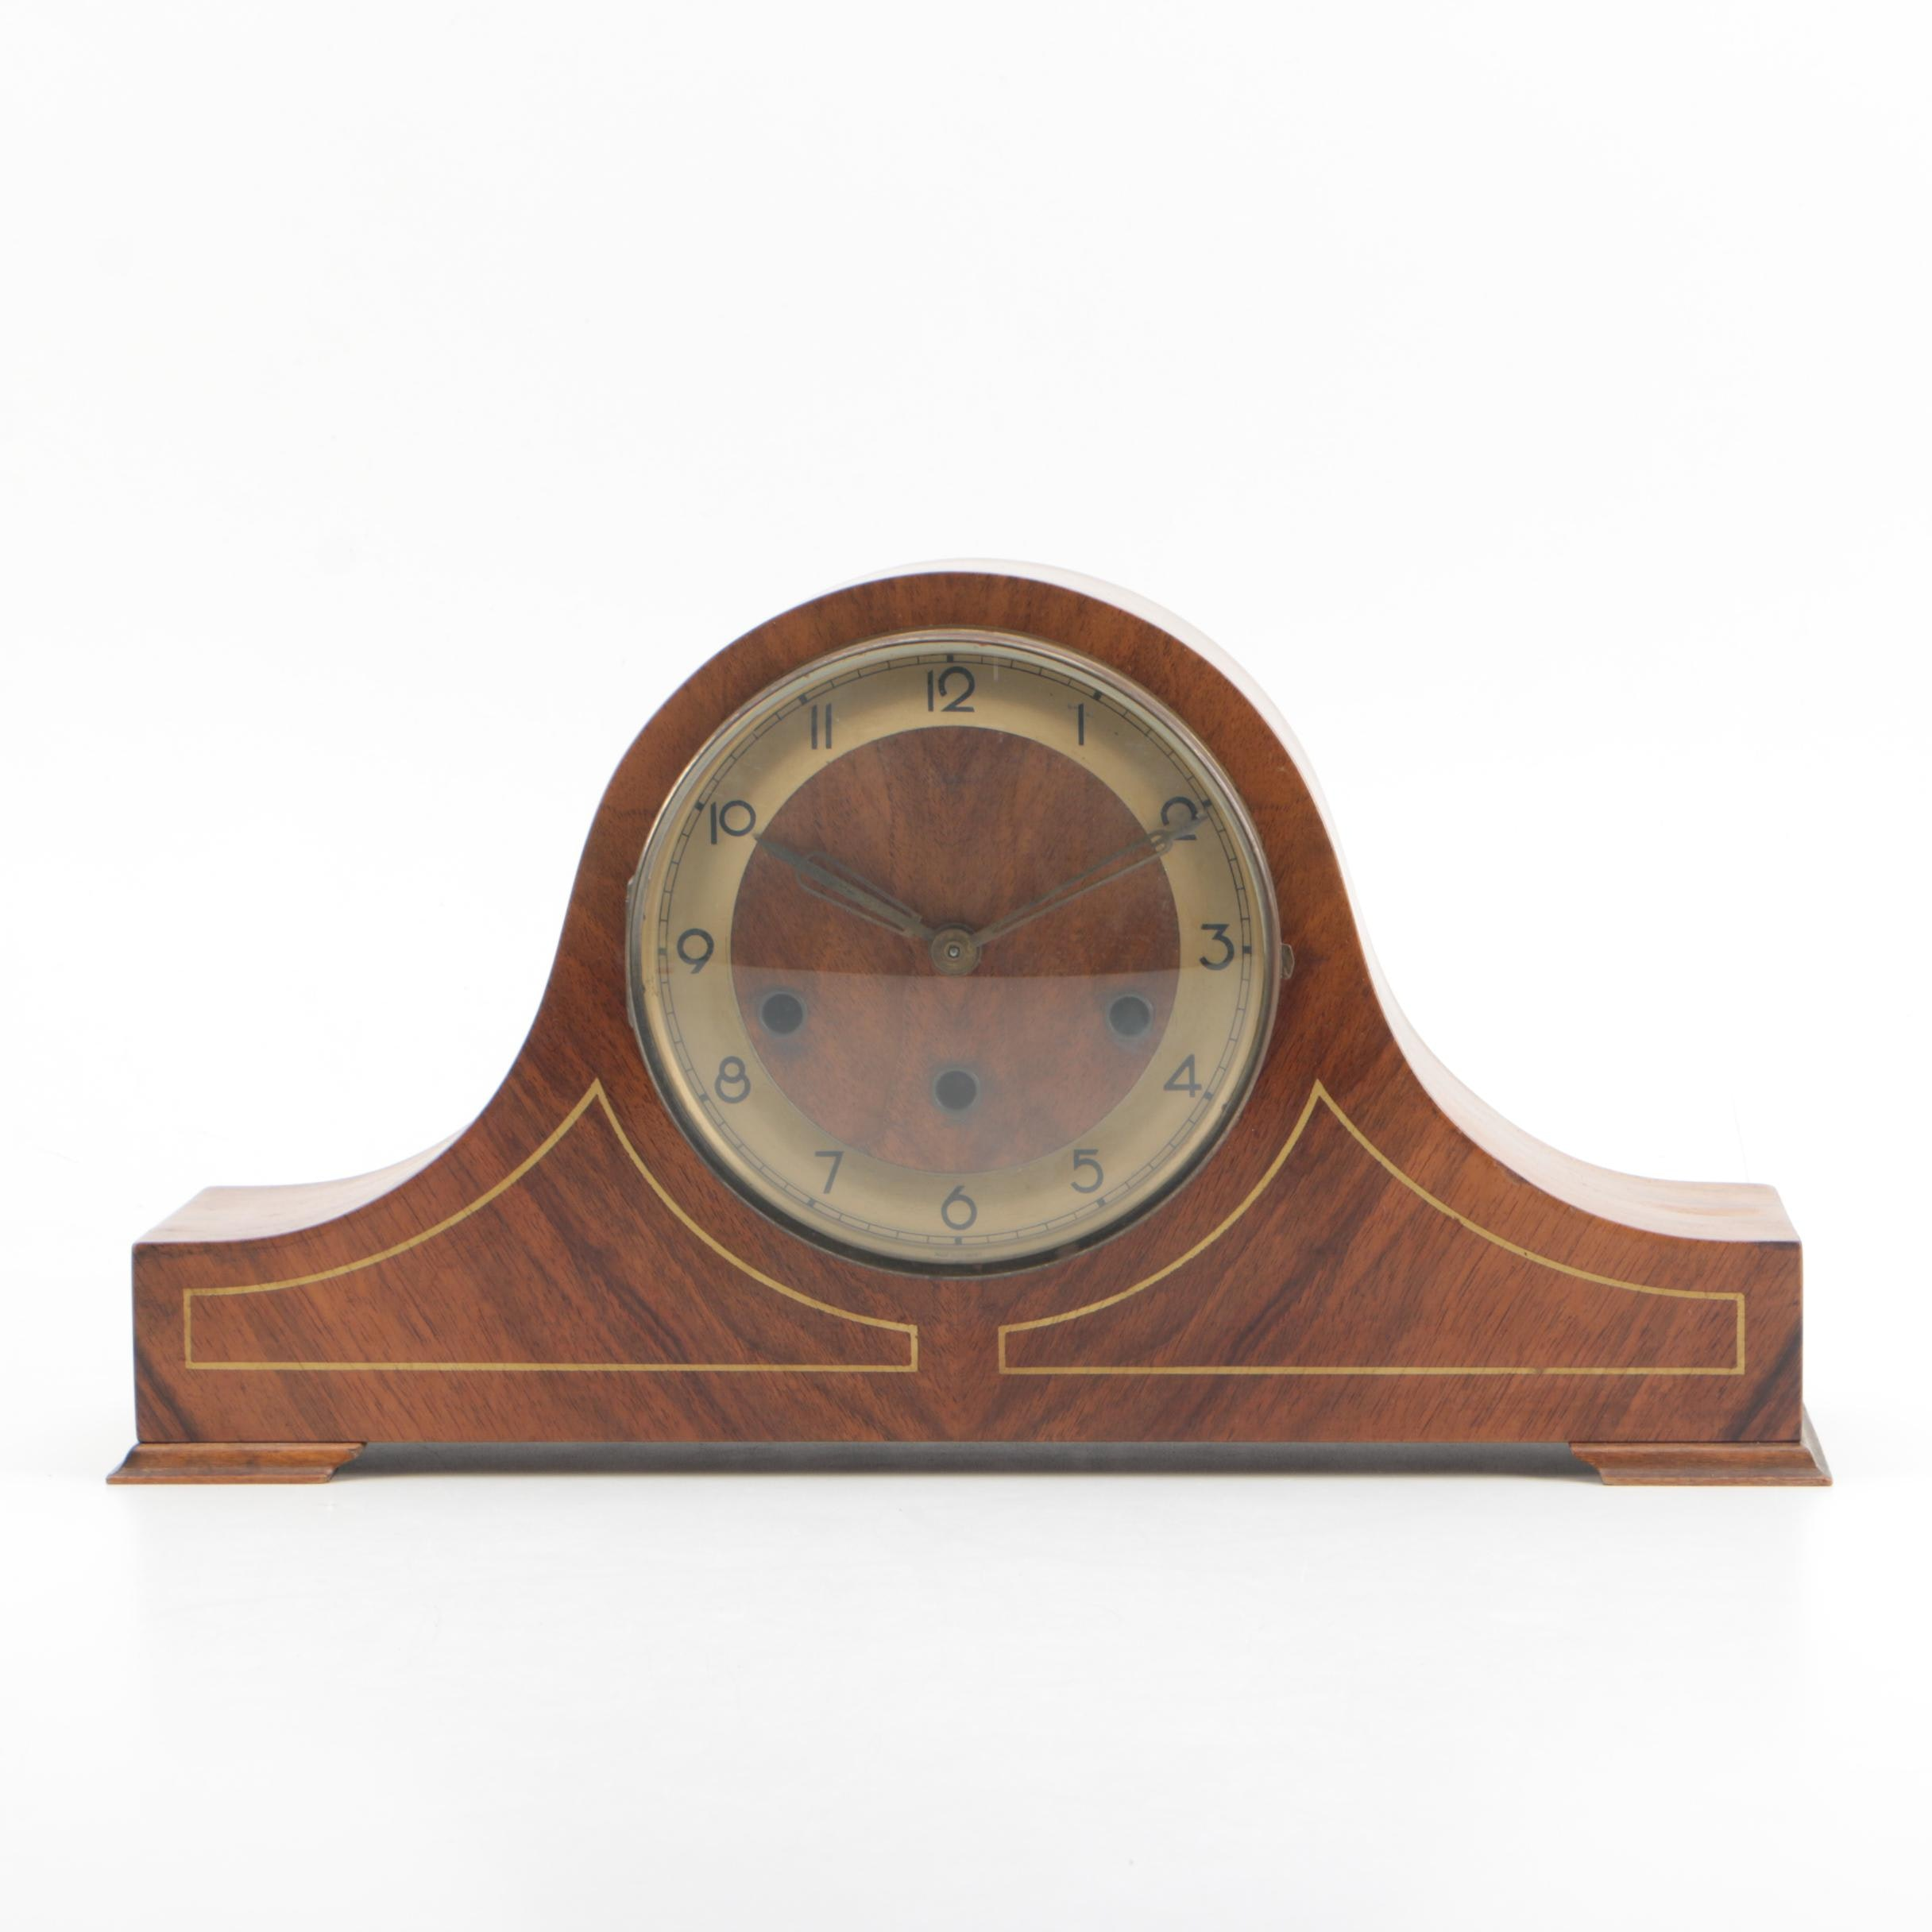 Vintage Linden Tambour Mantel Clock by Cuckoo Clock Mfg. Co.